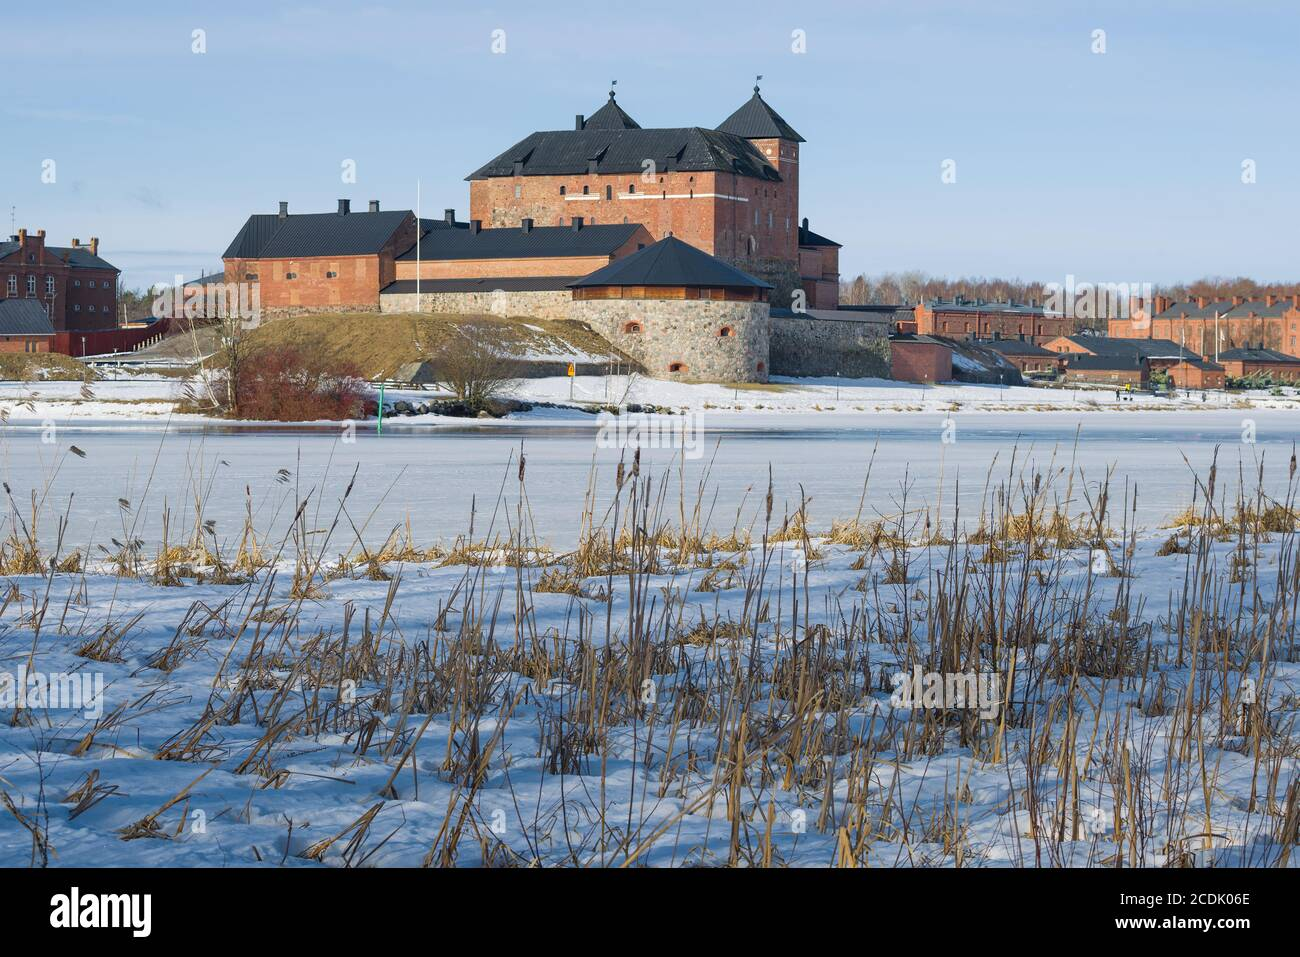 View of the ancient fortress of the Hameenlinna city from the shores of Vanajavesi lake on a March day. Finland Stock Photo